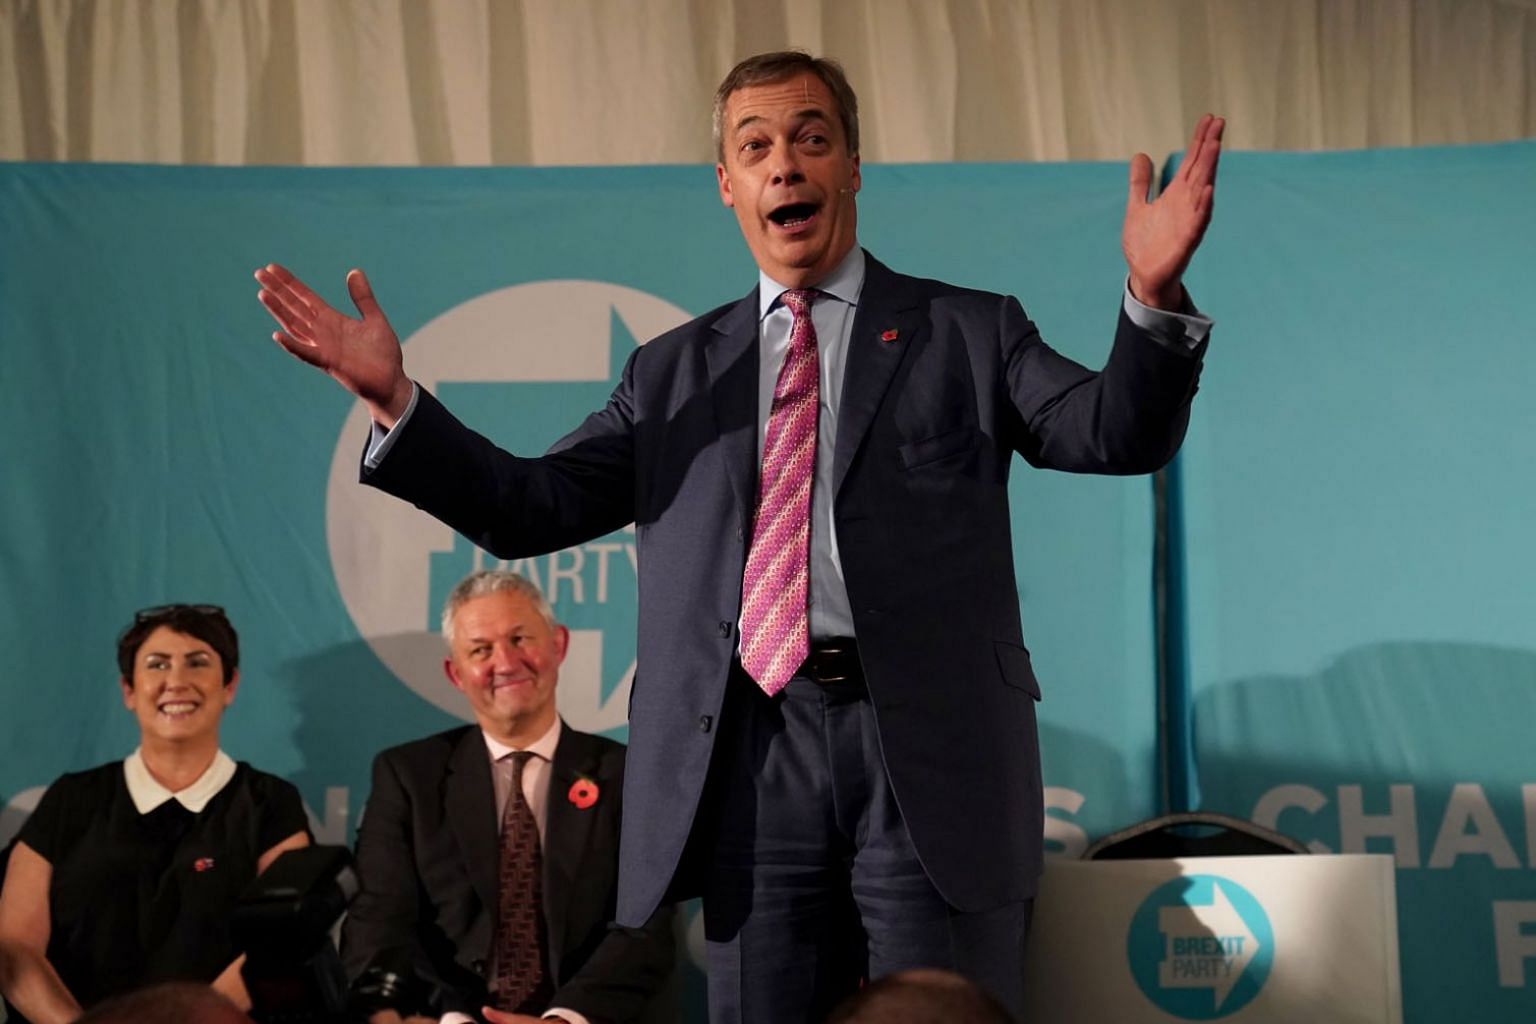 Mr Nigel Farage says his Brexit Party will not fight for the 317 seats won by the Conservative Party in the 2017 election.